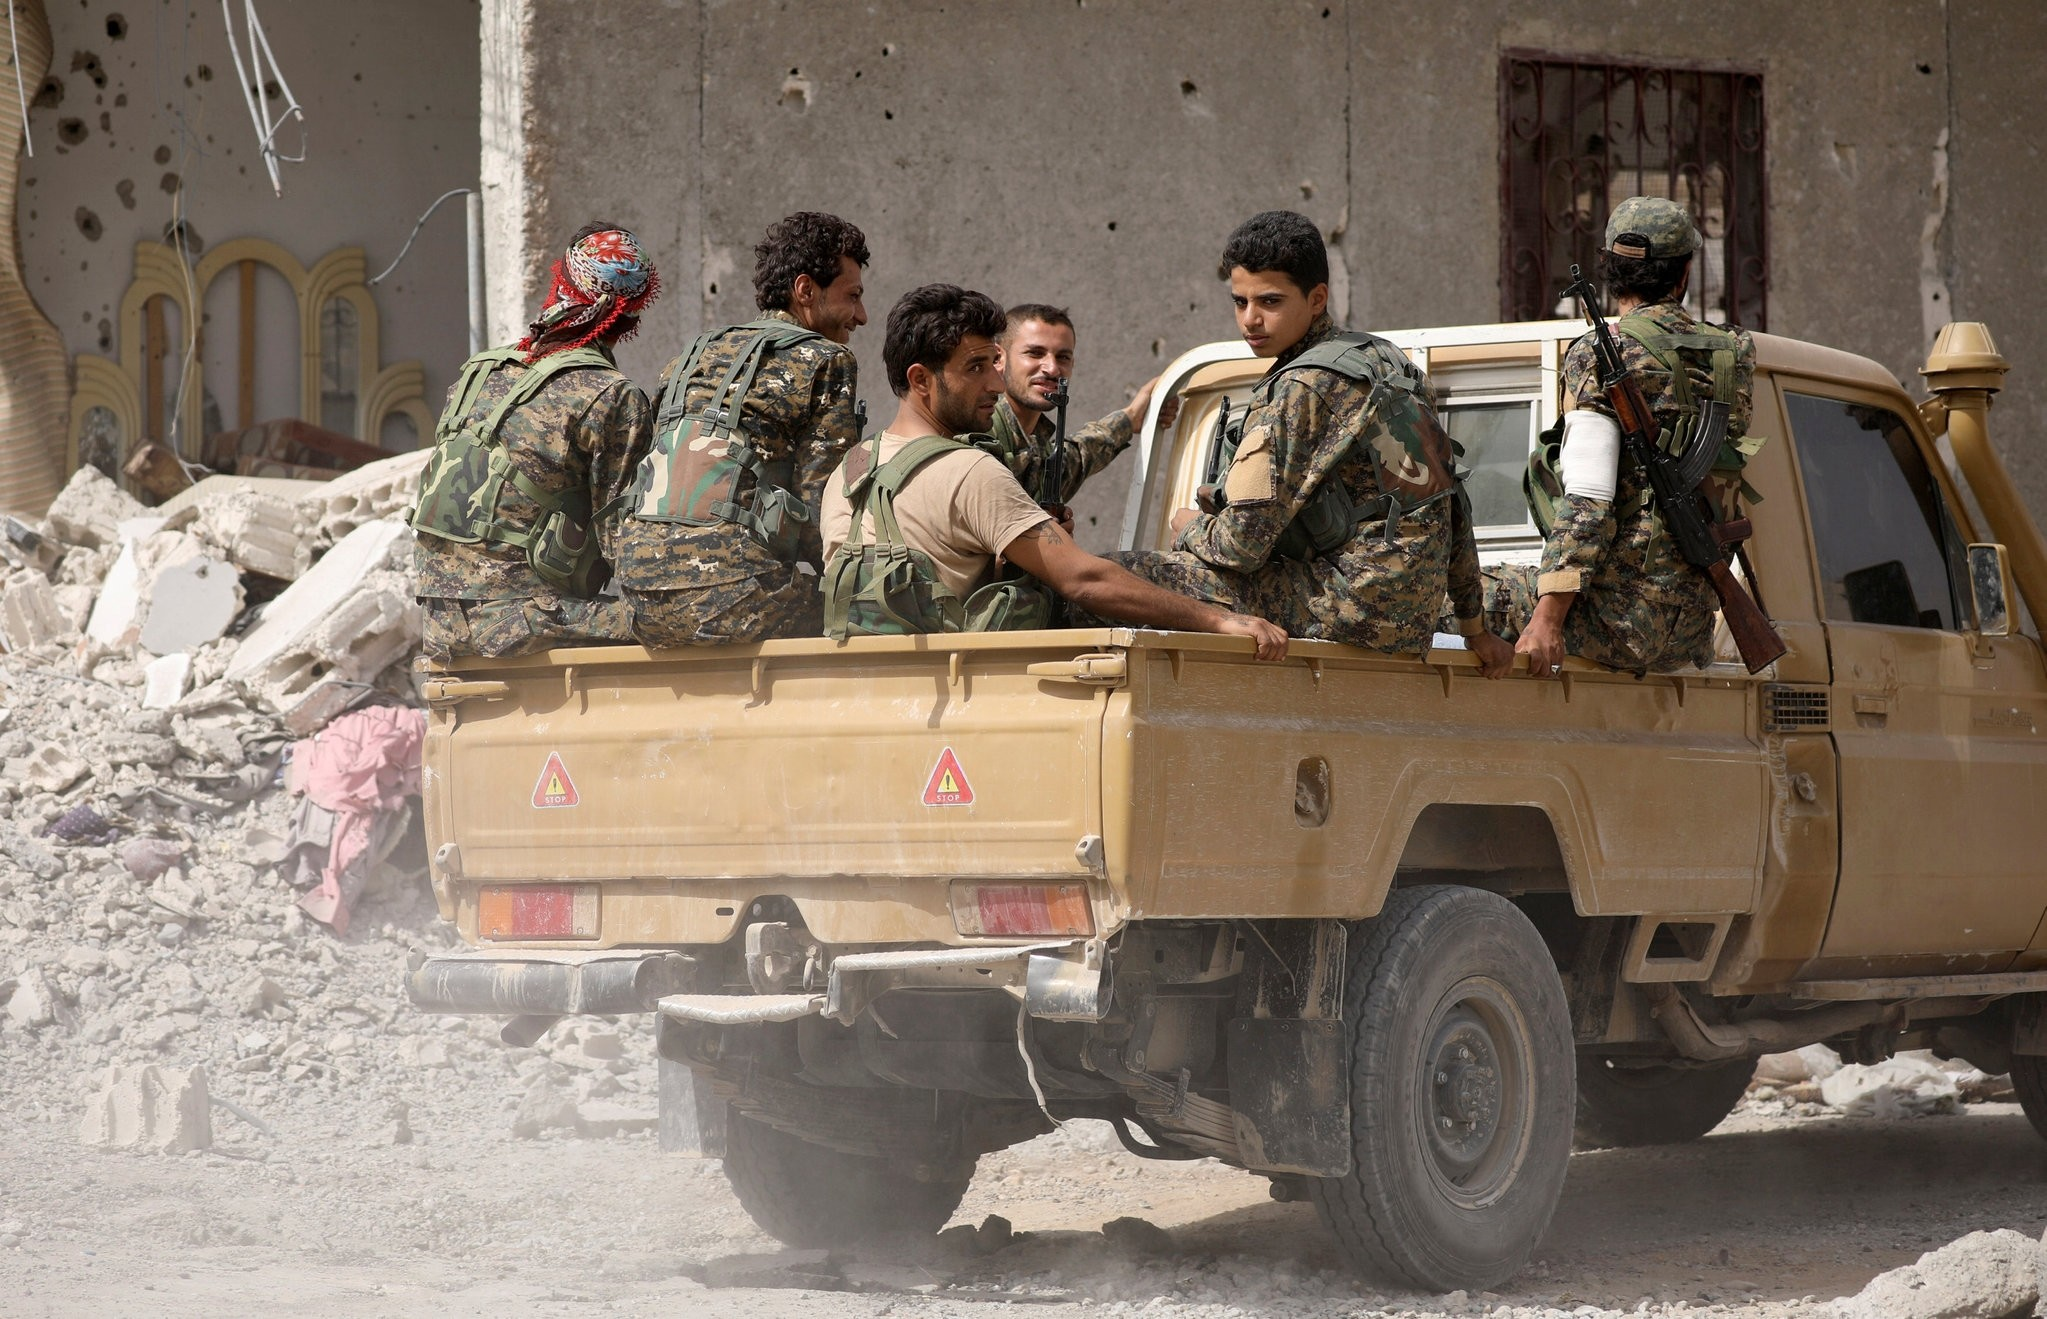 Fighters from Syrian Democratic Forces (SDF) sit on the back of a pick-up truck in Raqqa, Syria September 25, 2017. (REUTERS Photo)